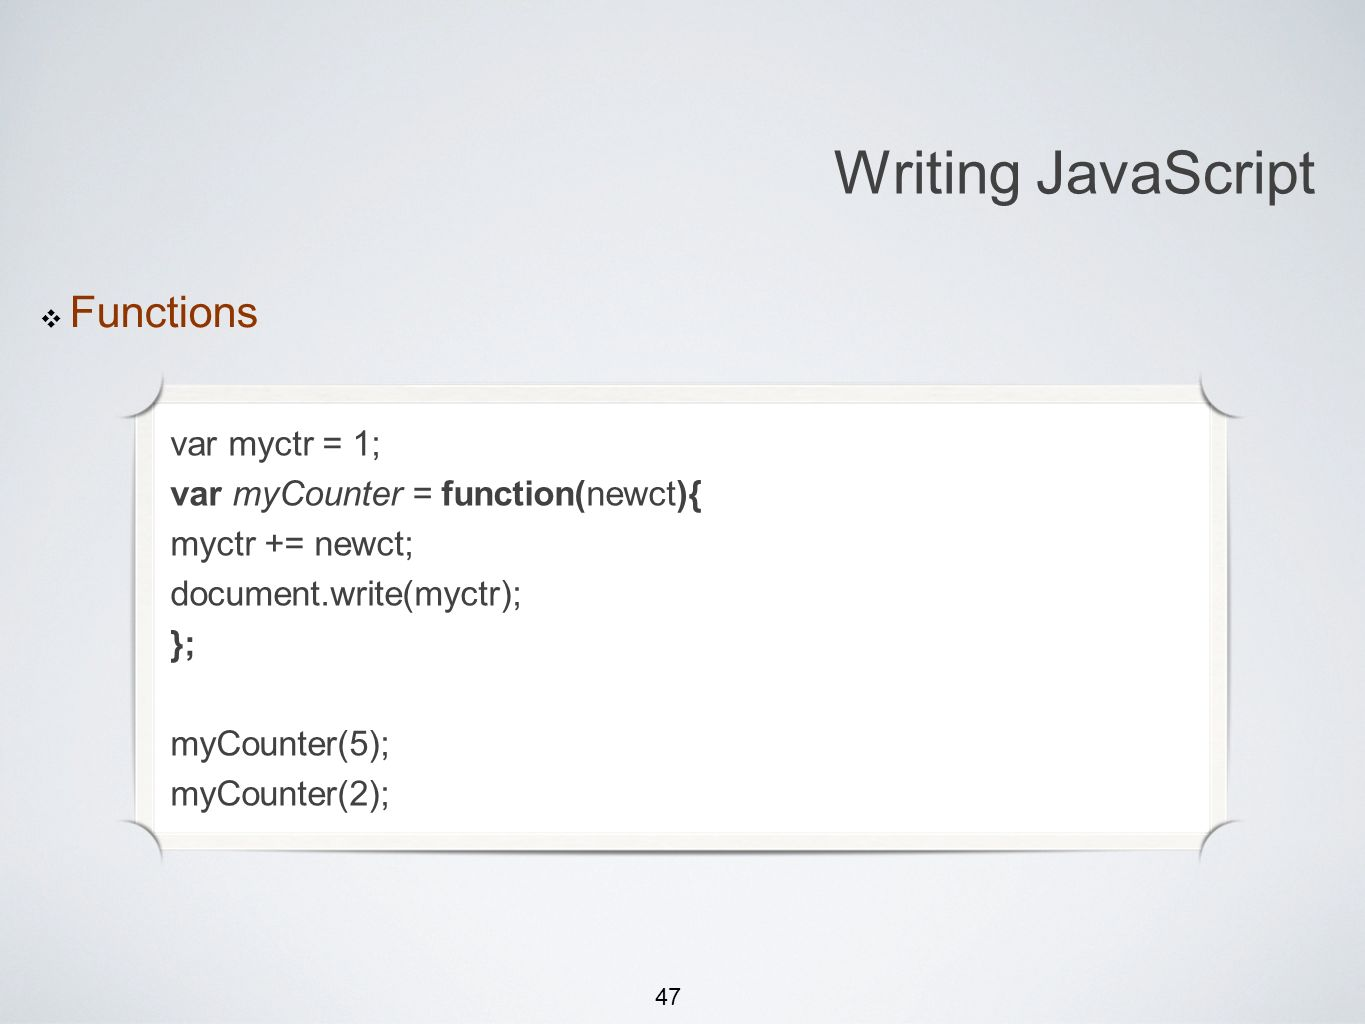 47 Michael Smotherman lectures 1:15pm FS2-207F Brandon Bombassei, Alejandro Campos labs 5pm-9pm 9pm-1am FS2-106E Writing JavaScript Functions var myctr = 1; var myCounter = function(newct){ myctr += newct; document.write(myctr); }; myCounter(5); myCounter(2);